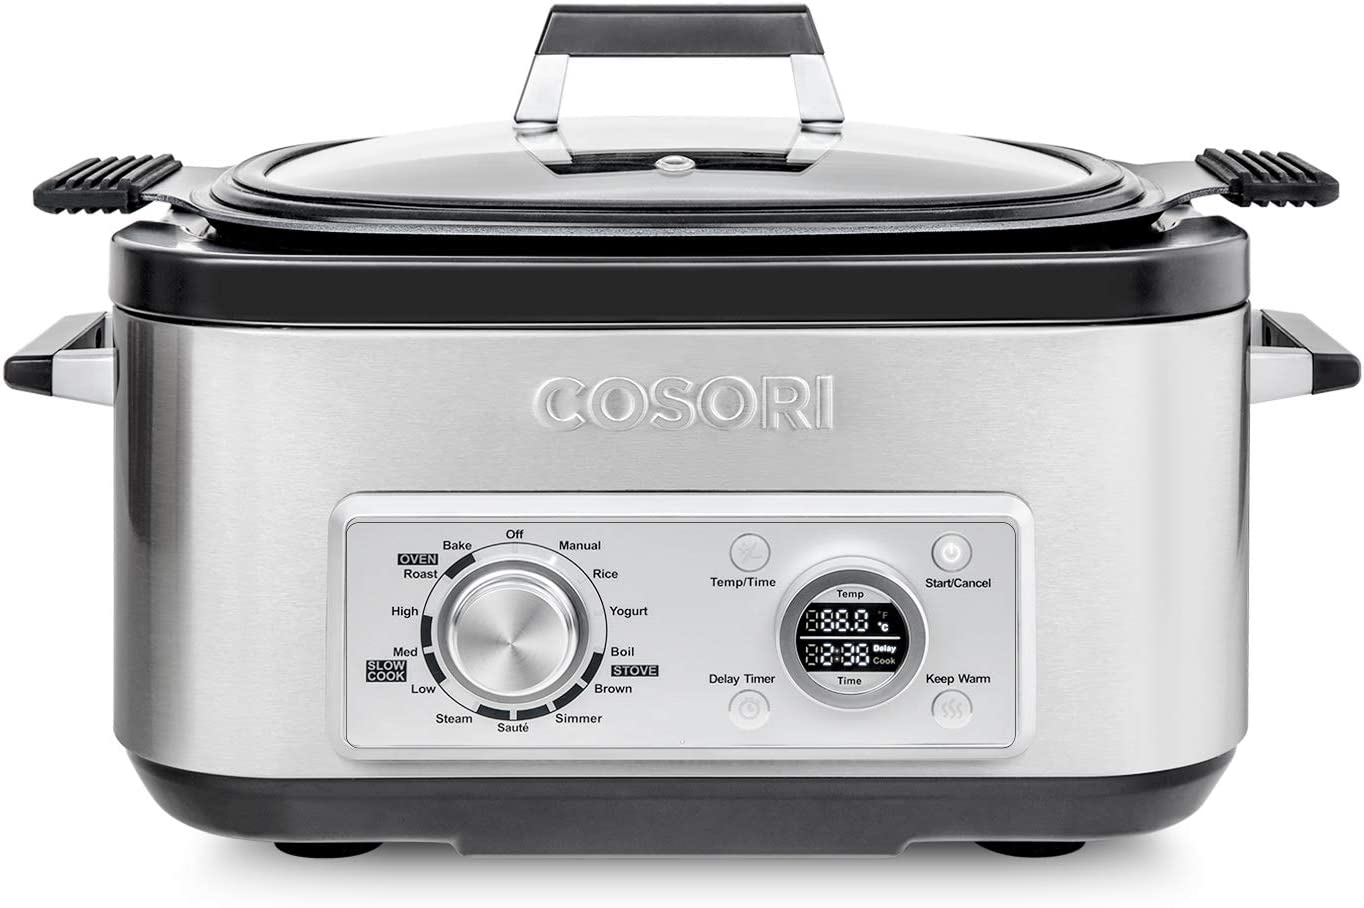 COSORI Multicooker 6 QT 11-in-1 Programmable Slow, Rice Cooker